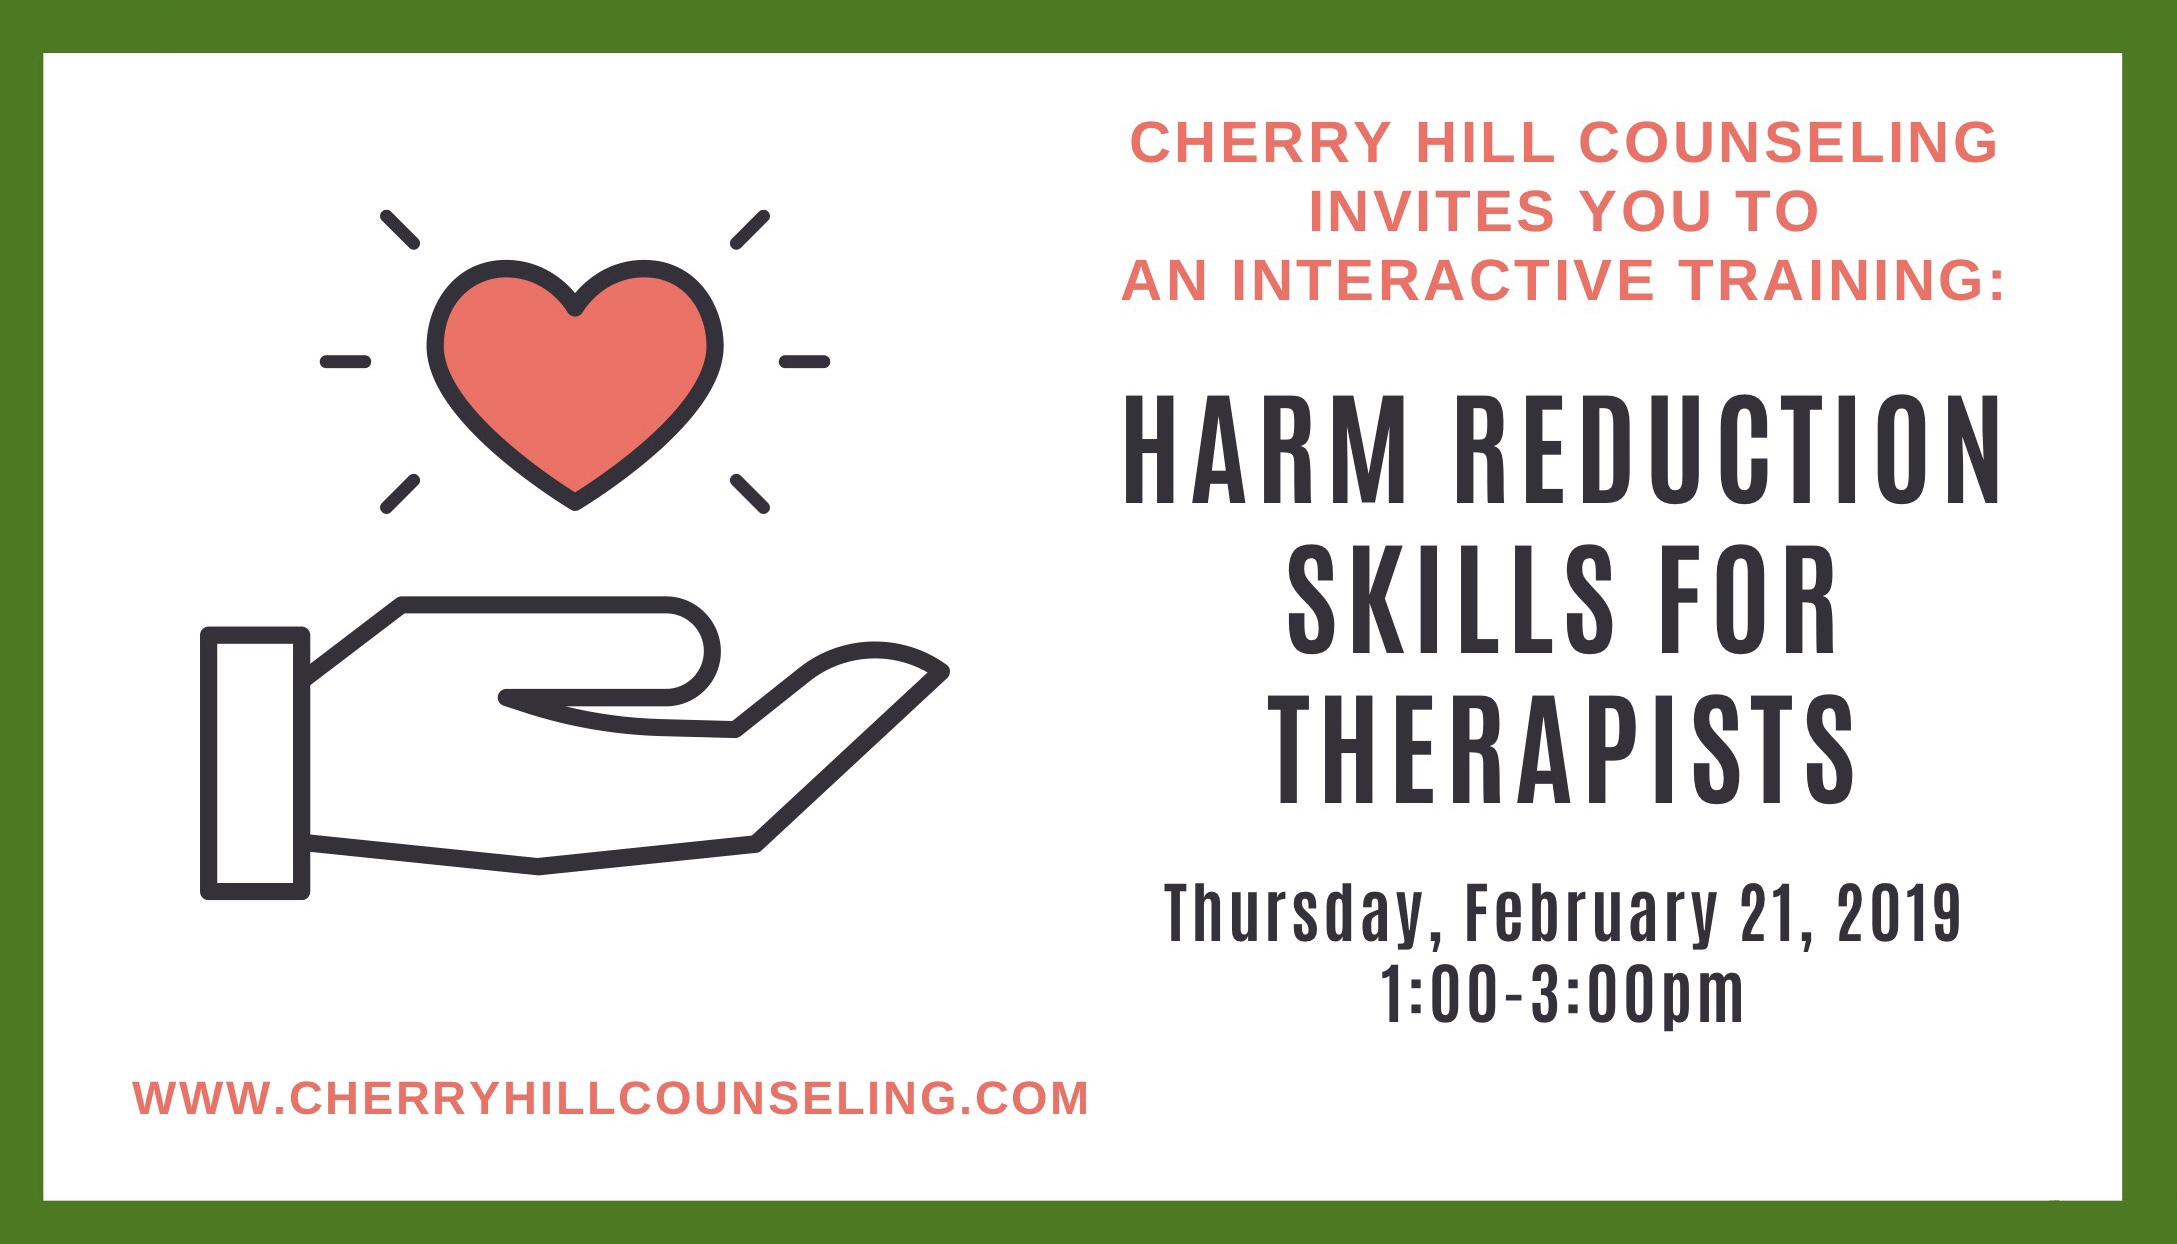 Harm Reduction Skills For Therapists